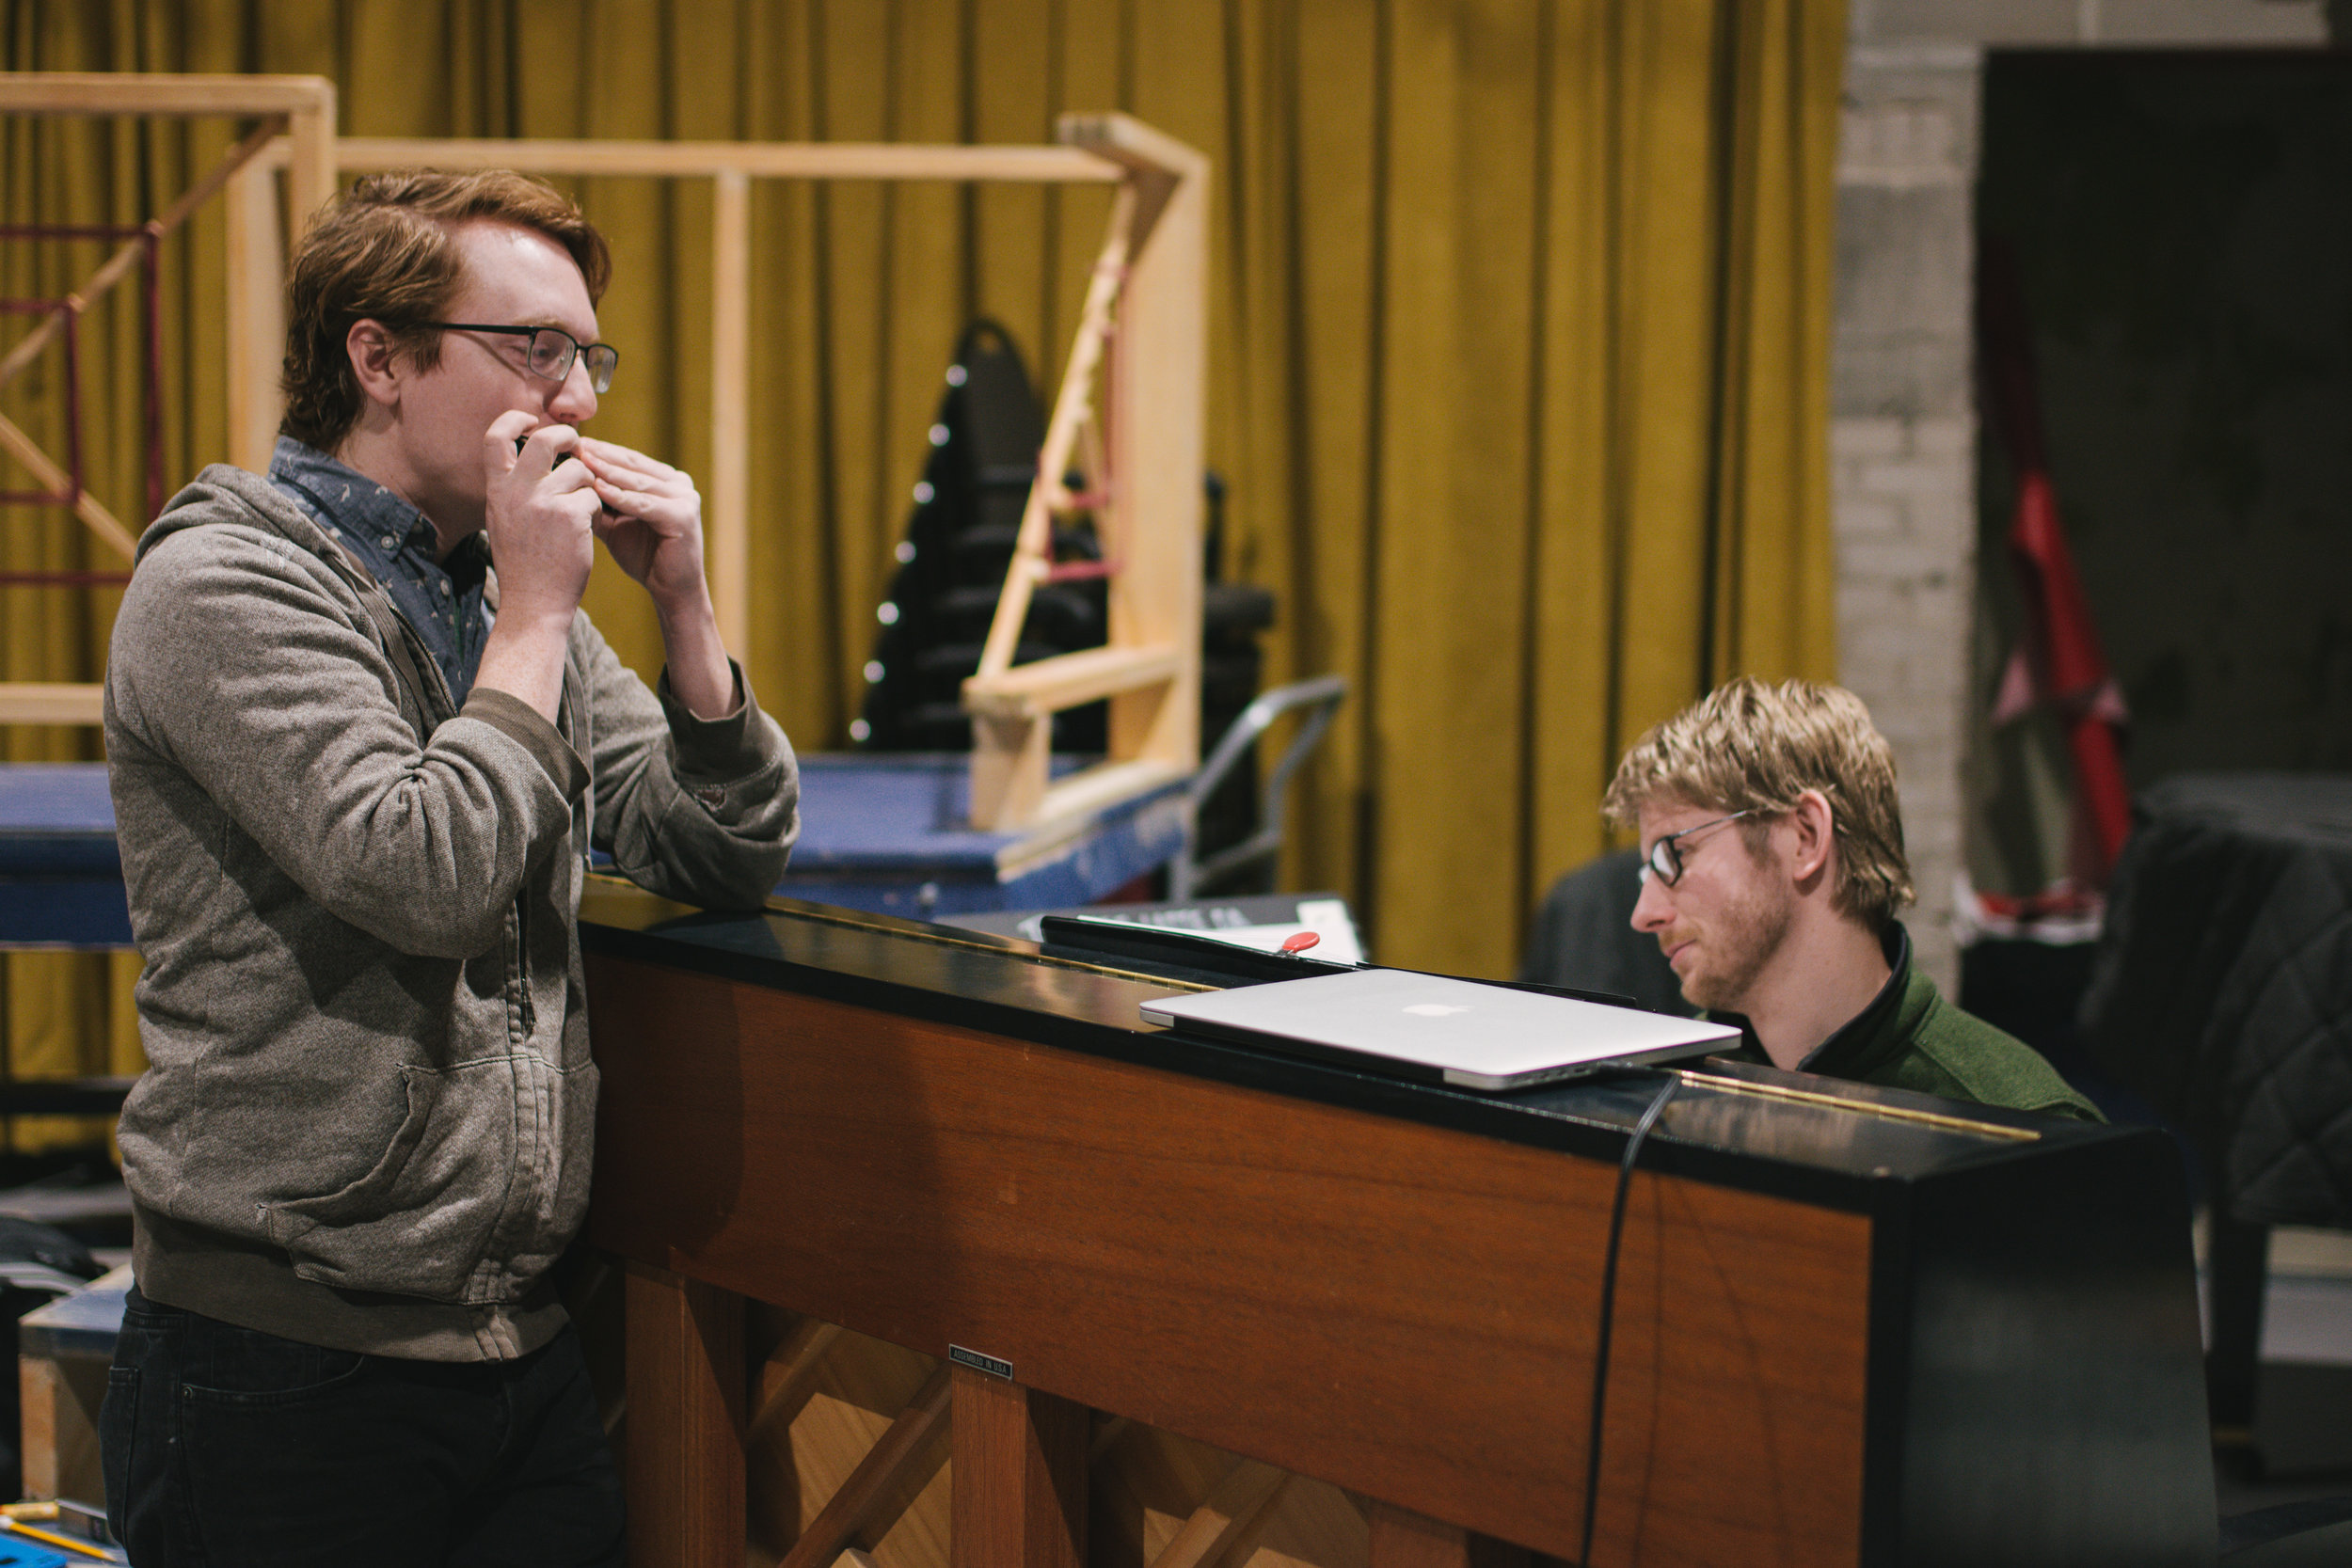 Matt Riehle (The Proprietor) rehearses with Jason Hansen, Music Director. Photo credit Emilee Elofson.